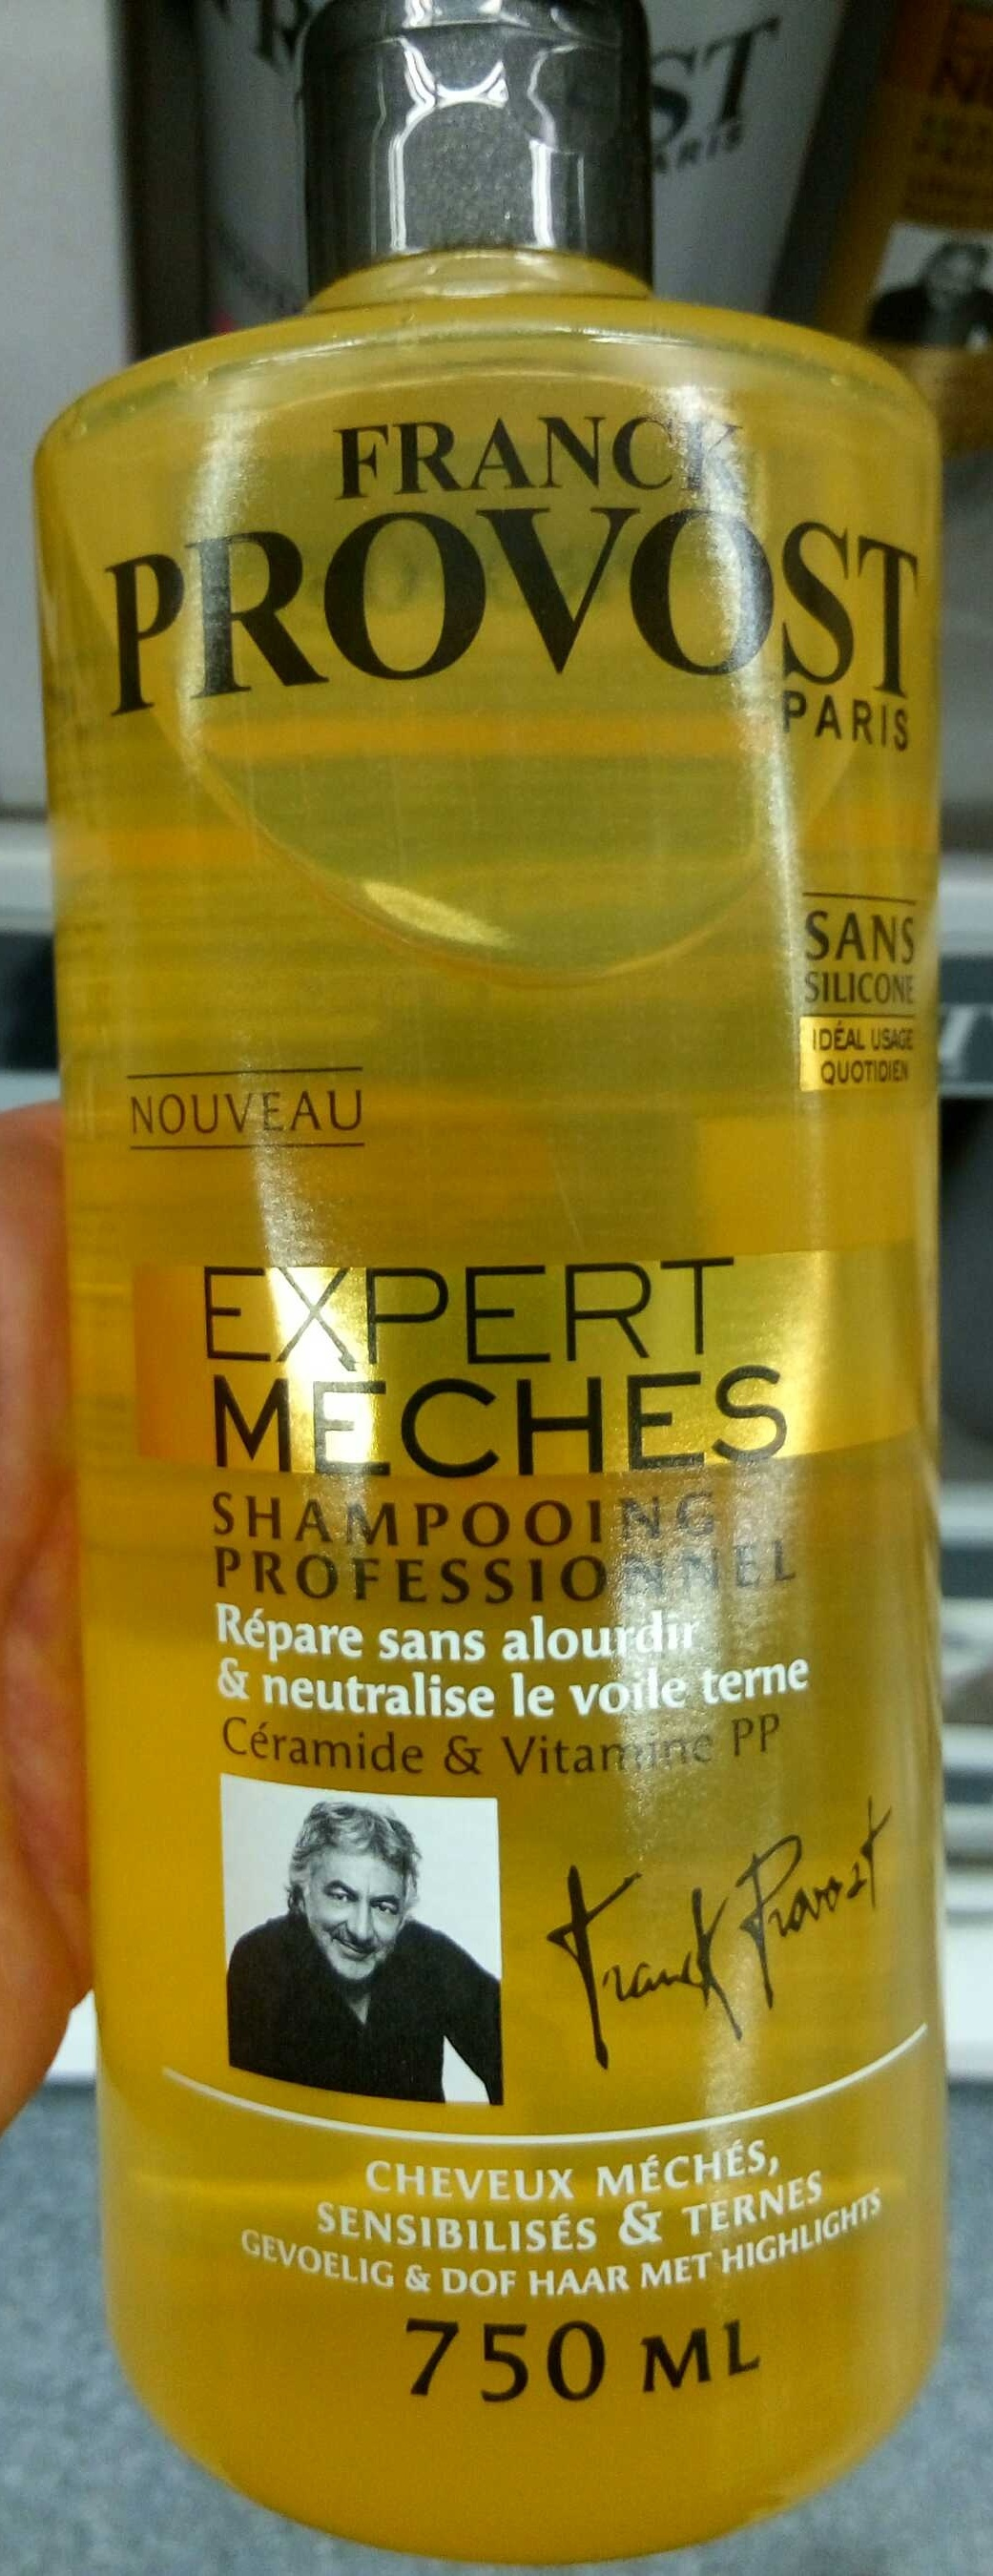 Expert mèches shampooing professionnel - Product - fr